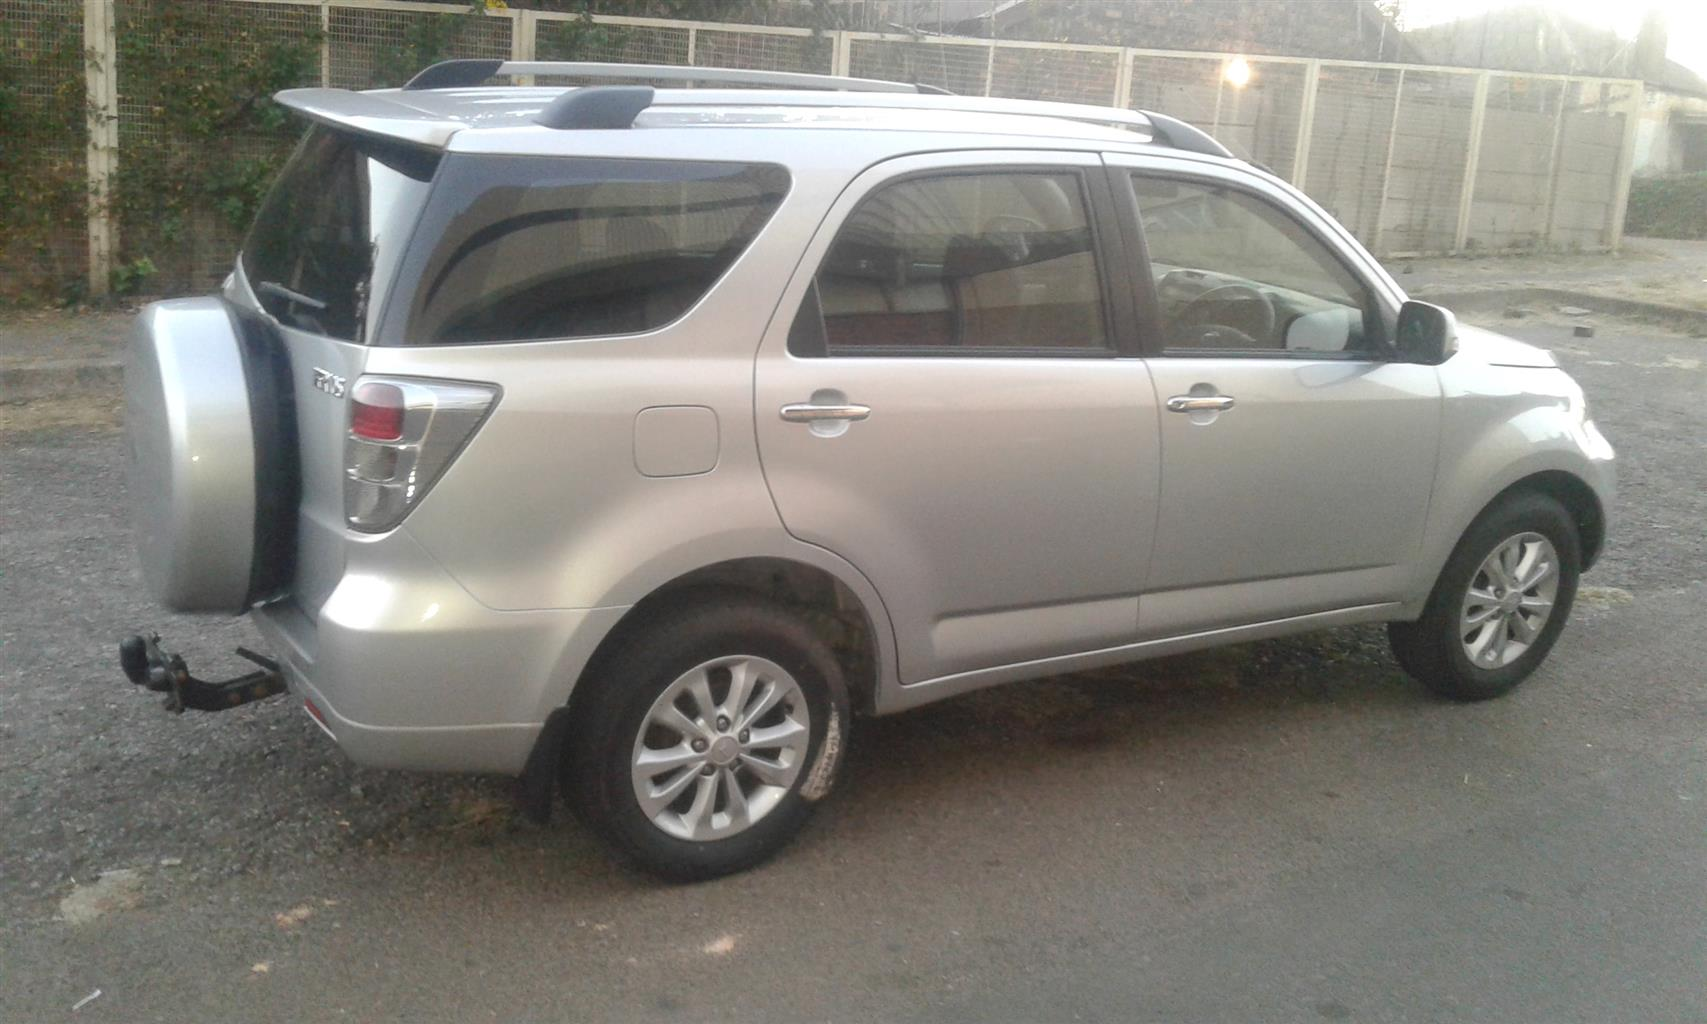 2012 Daihatsu Terios Long 1.5 7 seater automatic